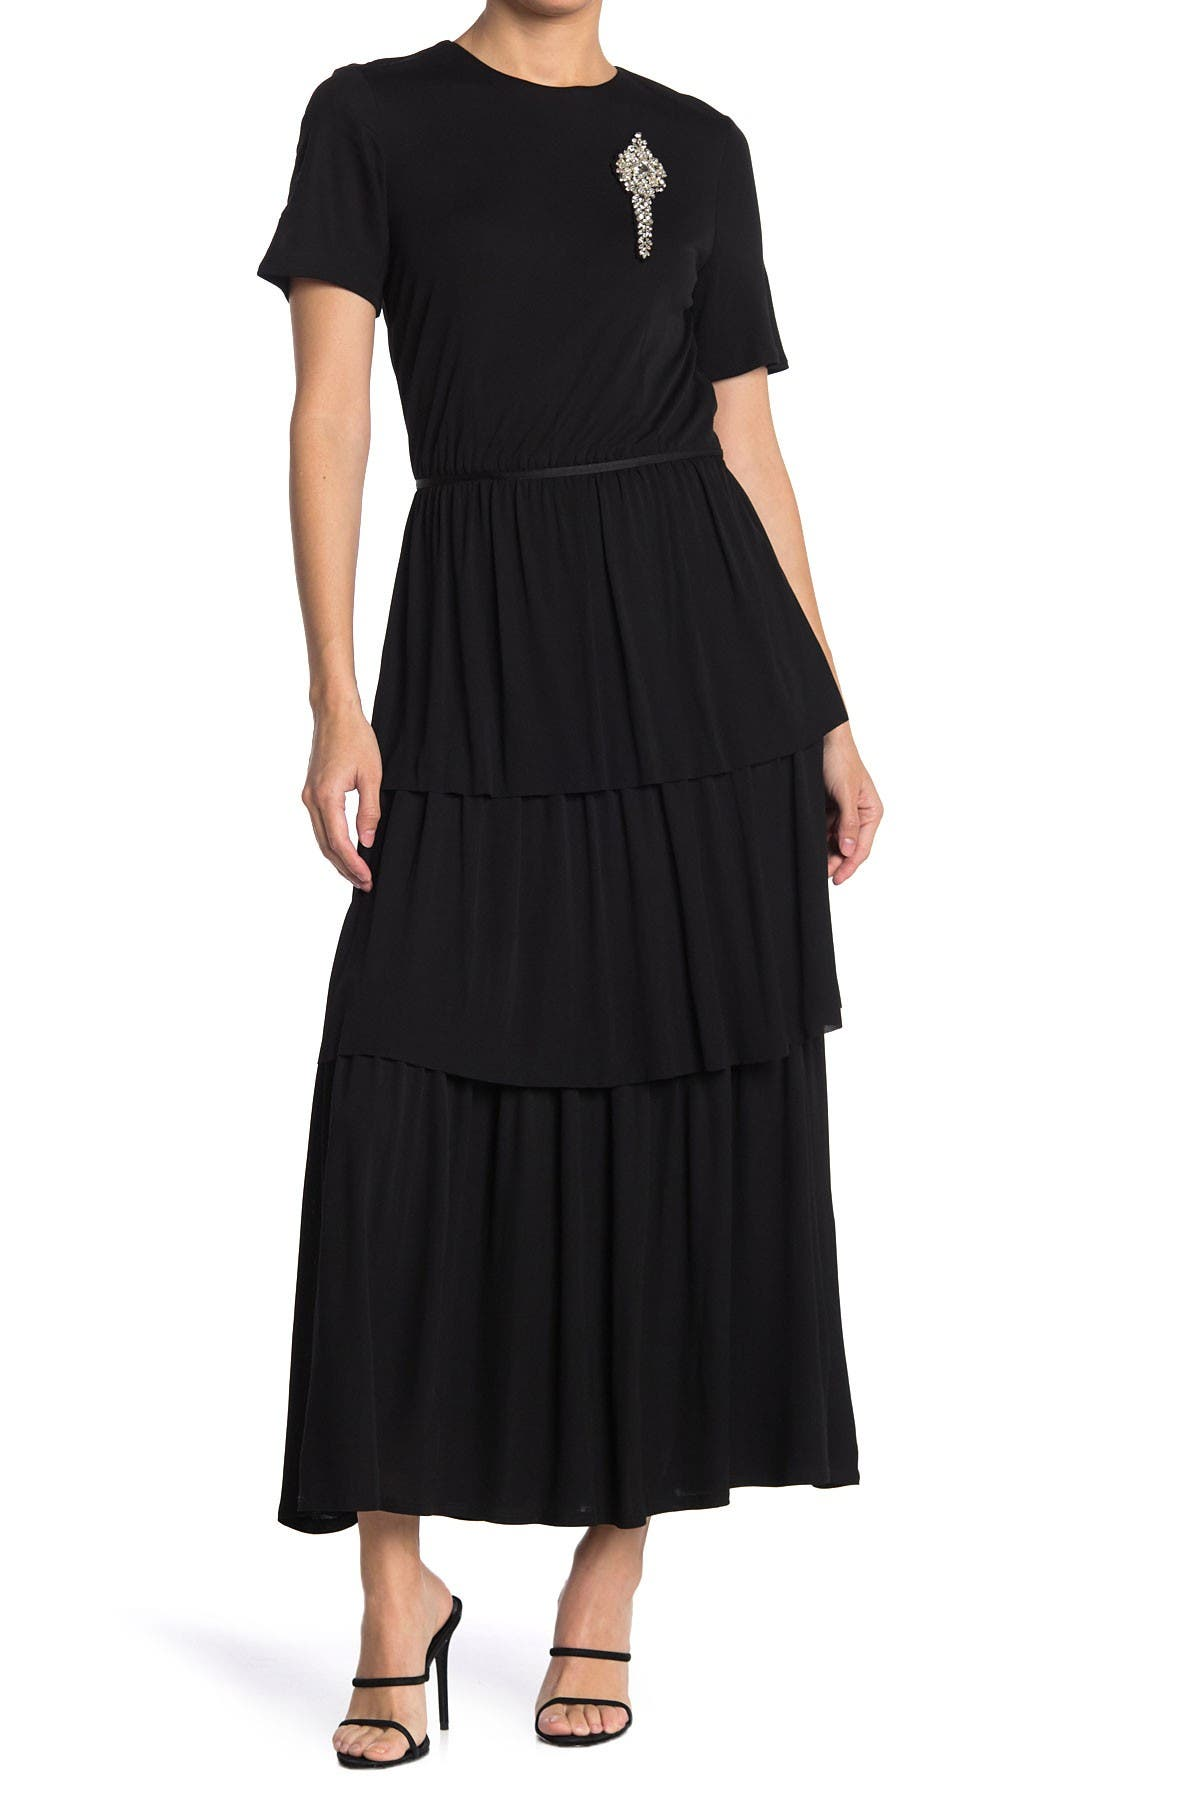 Image of Burberry Tiered Skirt Dress